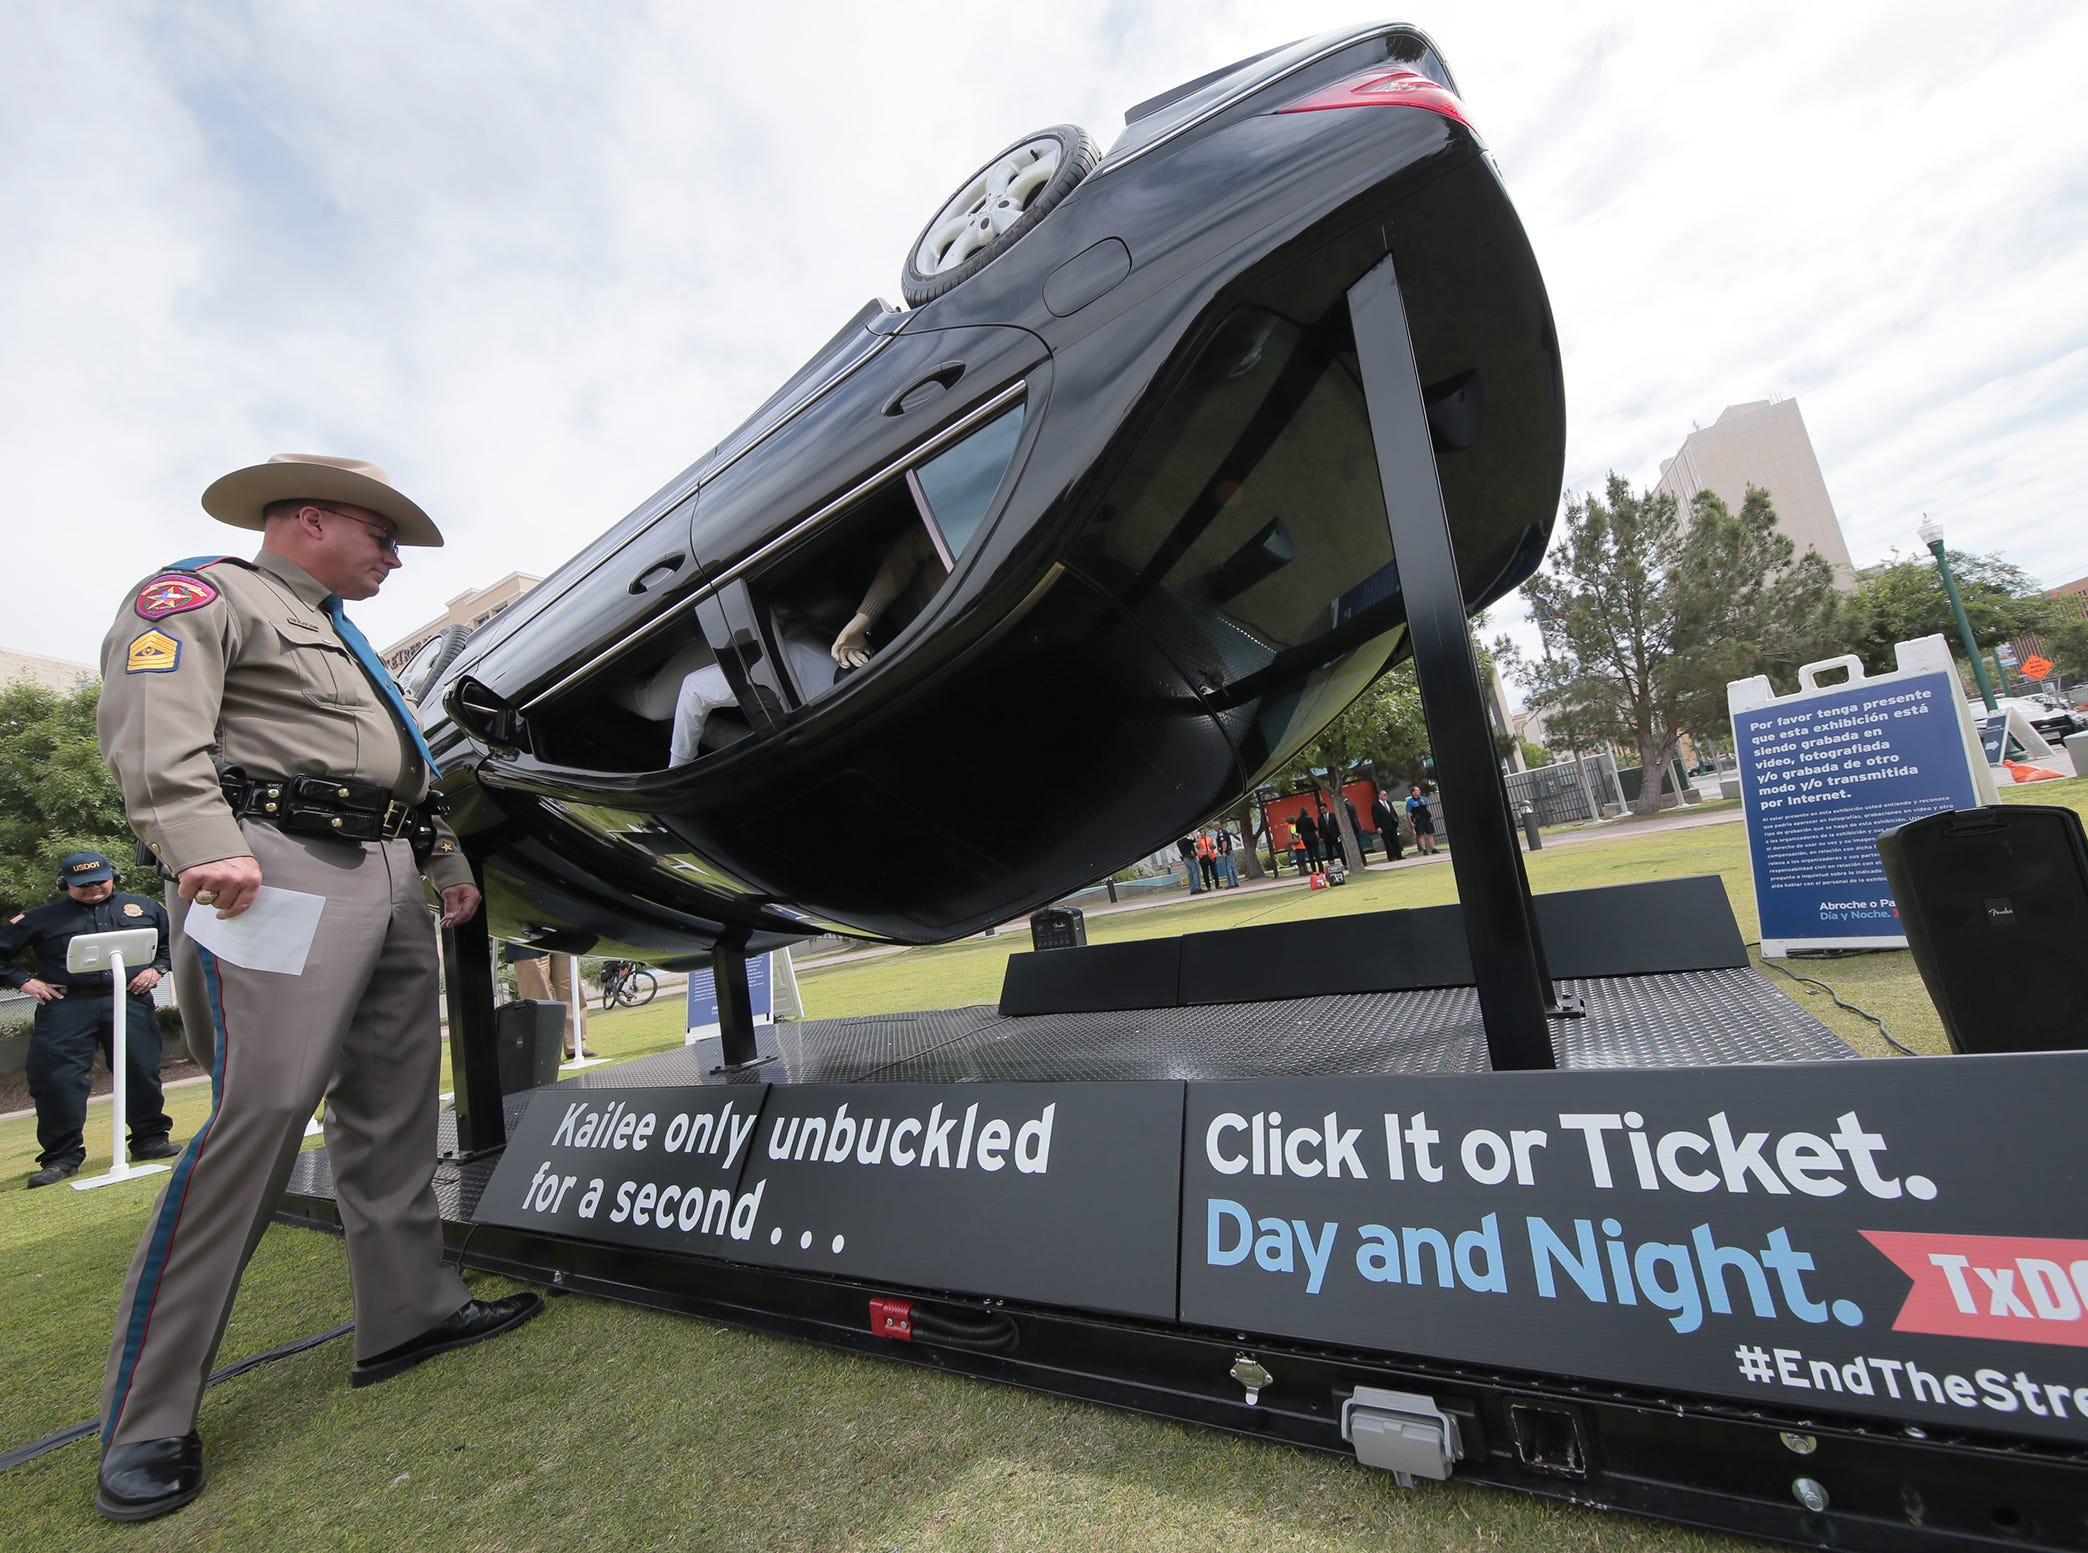 TxDOT kicked off their annual Click It or Ticket Campaign Tuesday at Cleveland Square in El Paso. The annual event reminds motorists to buckle up or face fines, or worse, death.